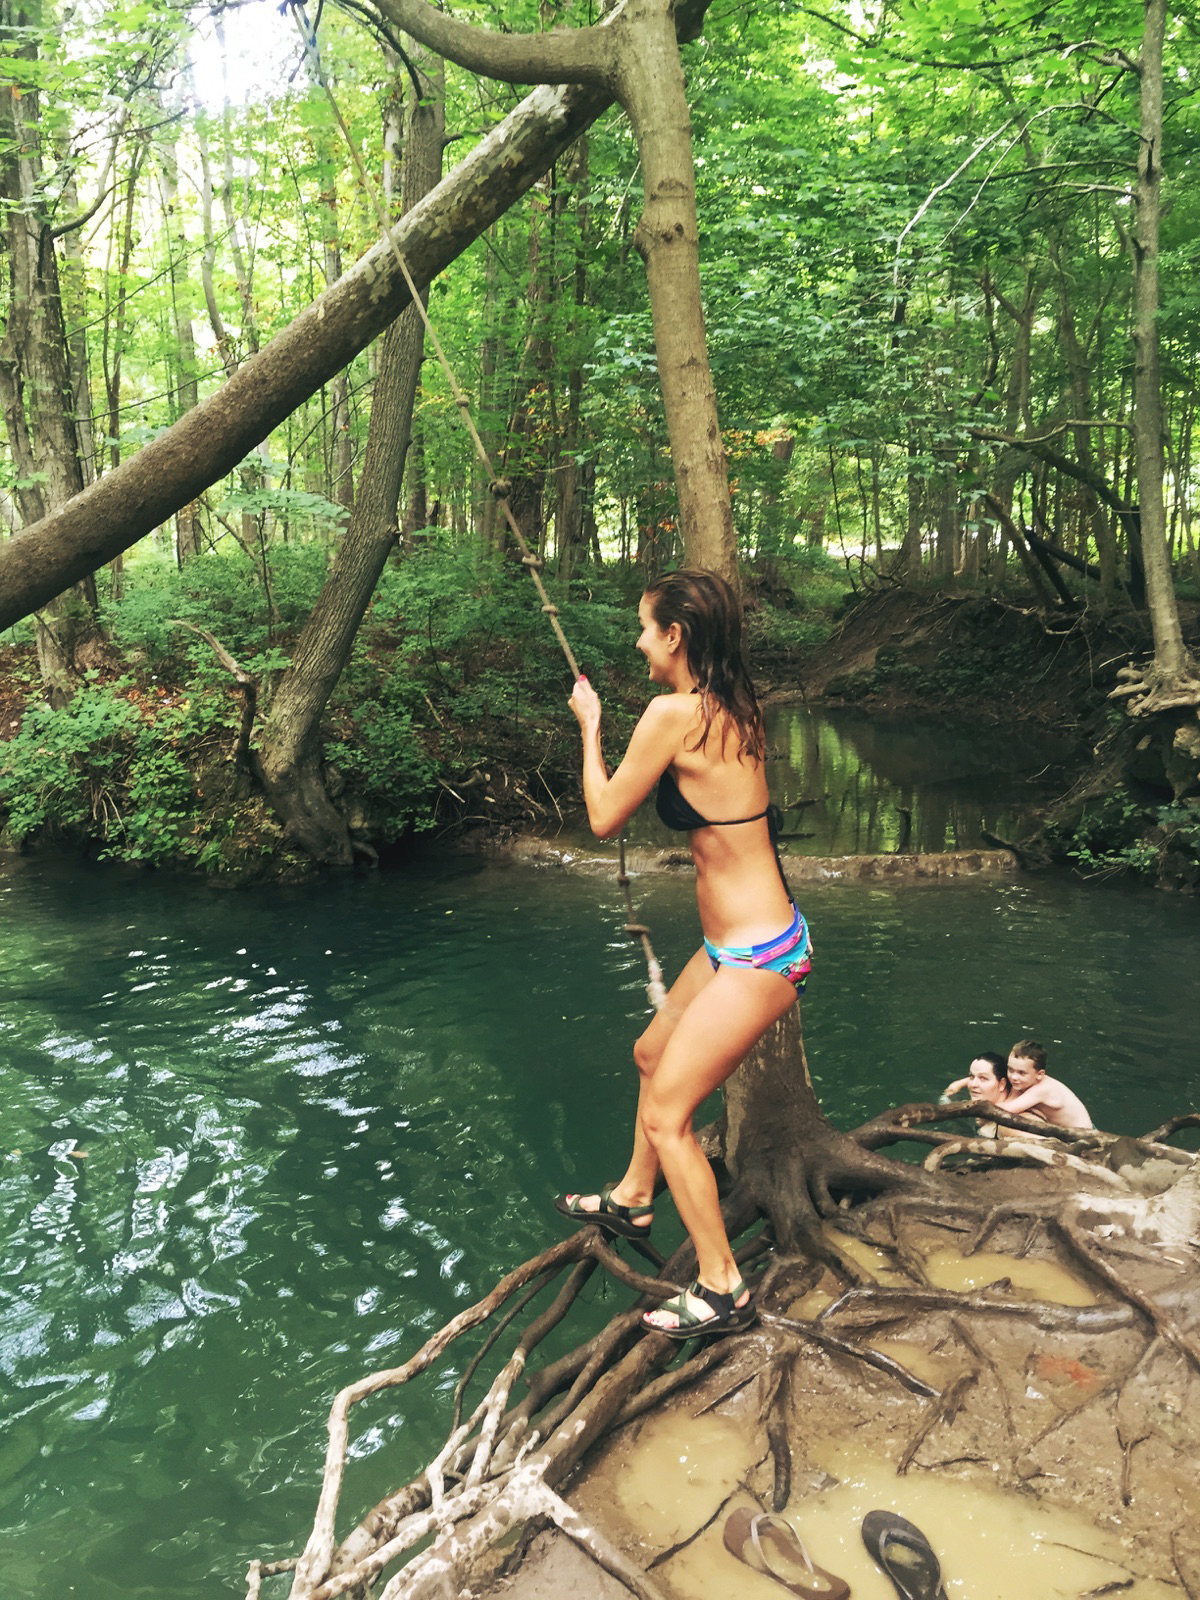 { A rope swing? Count me in. }